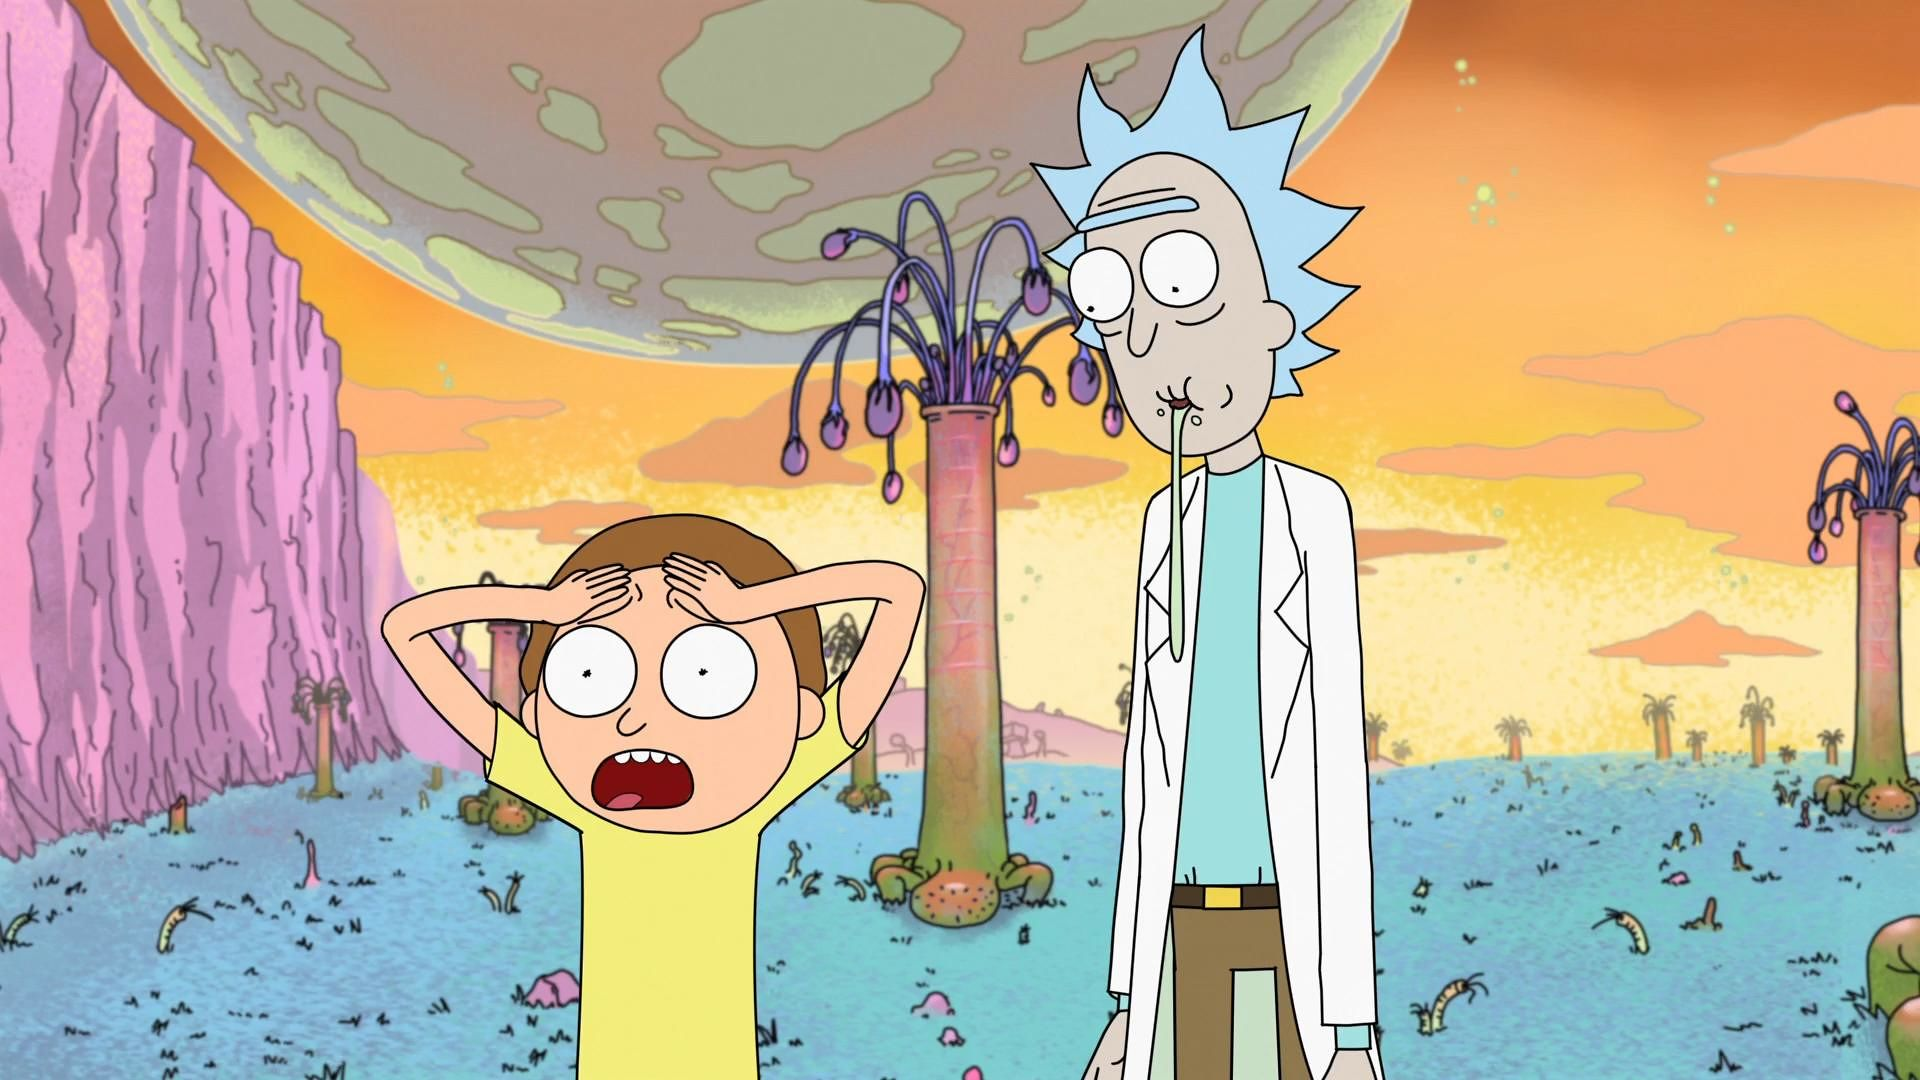 Rick and Morty Season 5 update